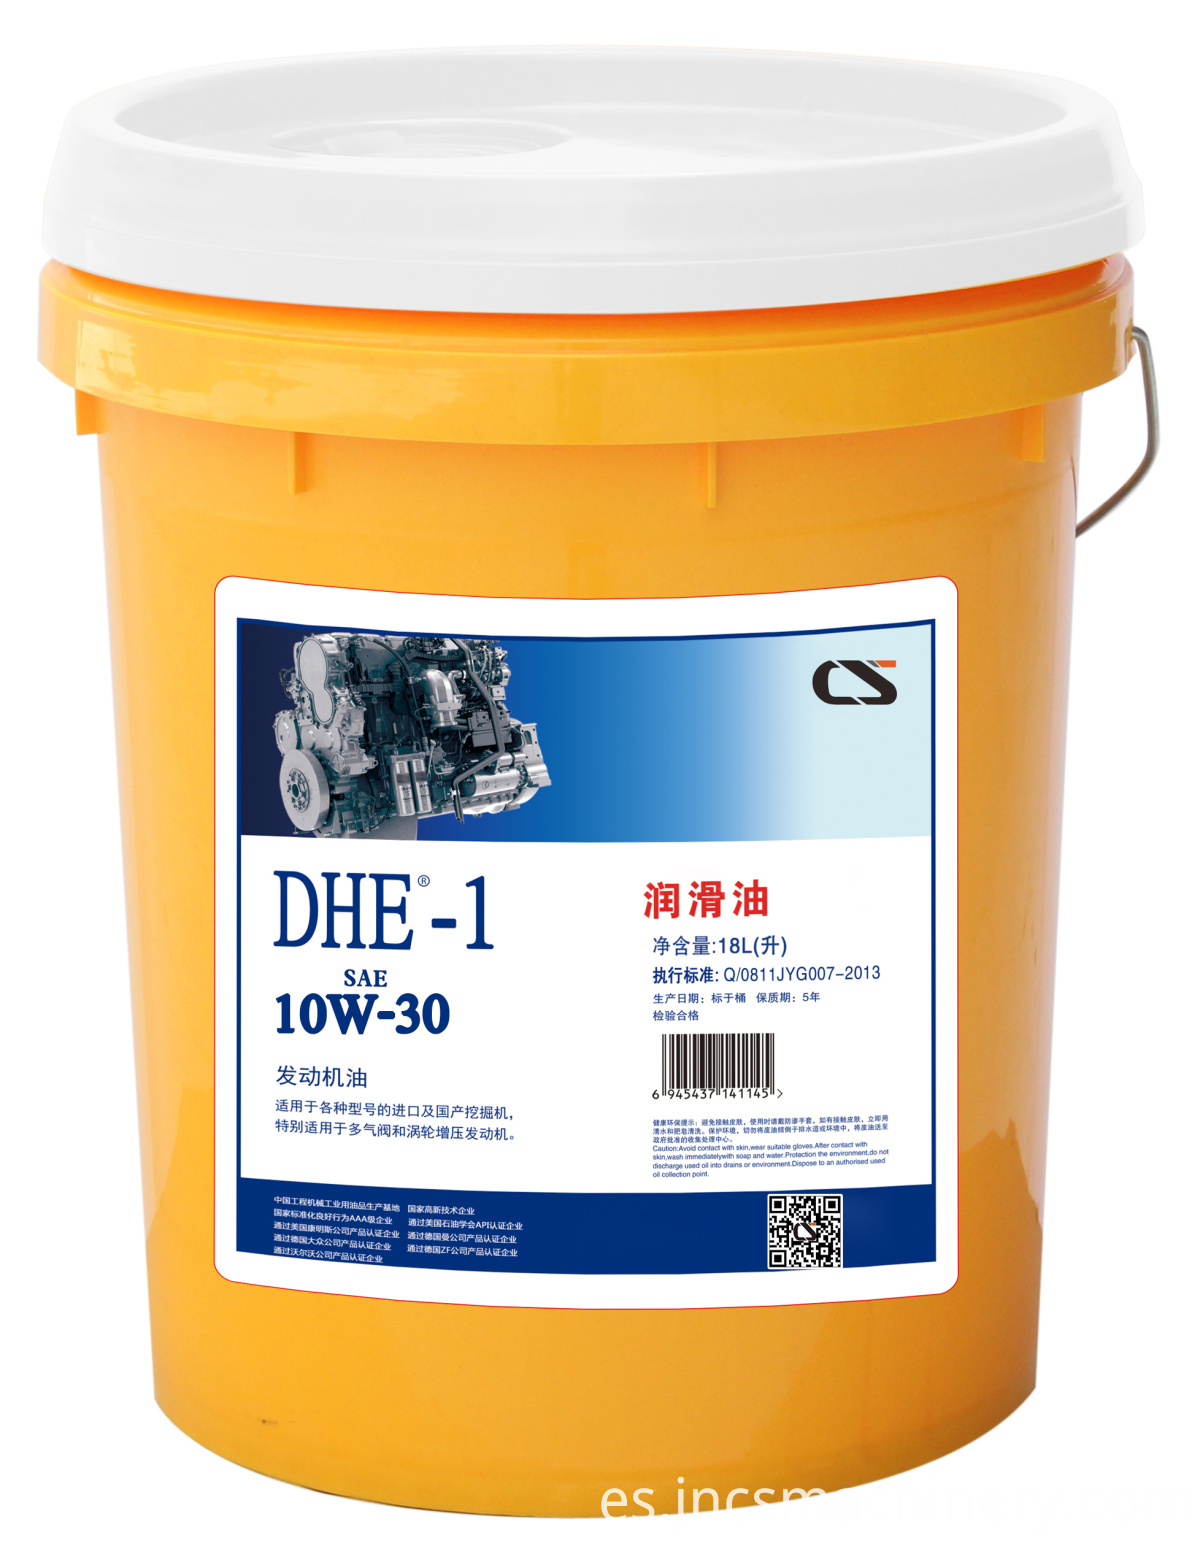 Shantui Excavator Lubricating Oils engine oil DHE-1 SAE 10W-30